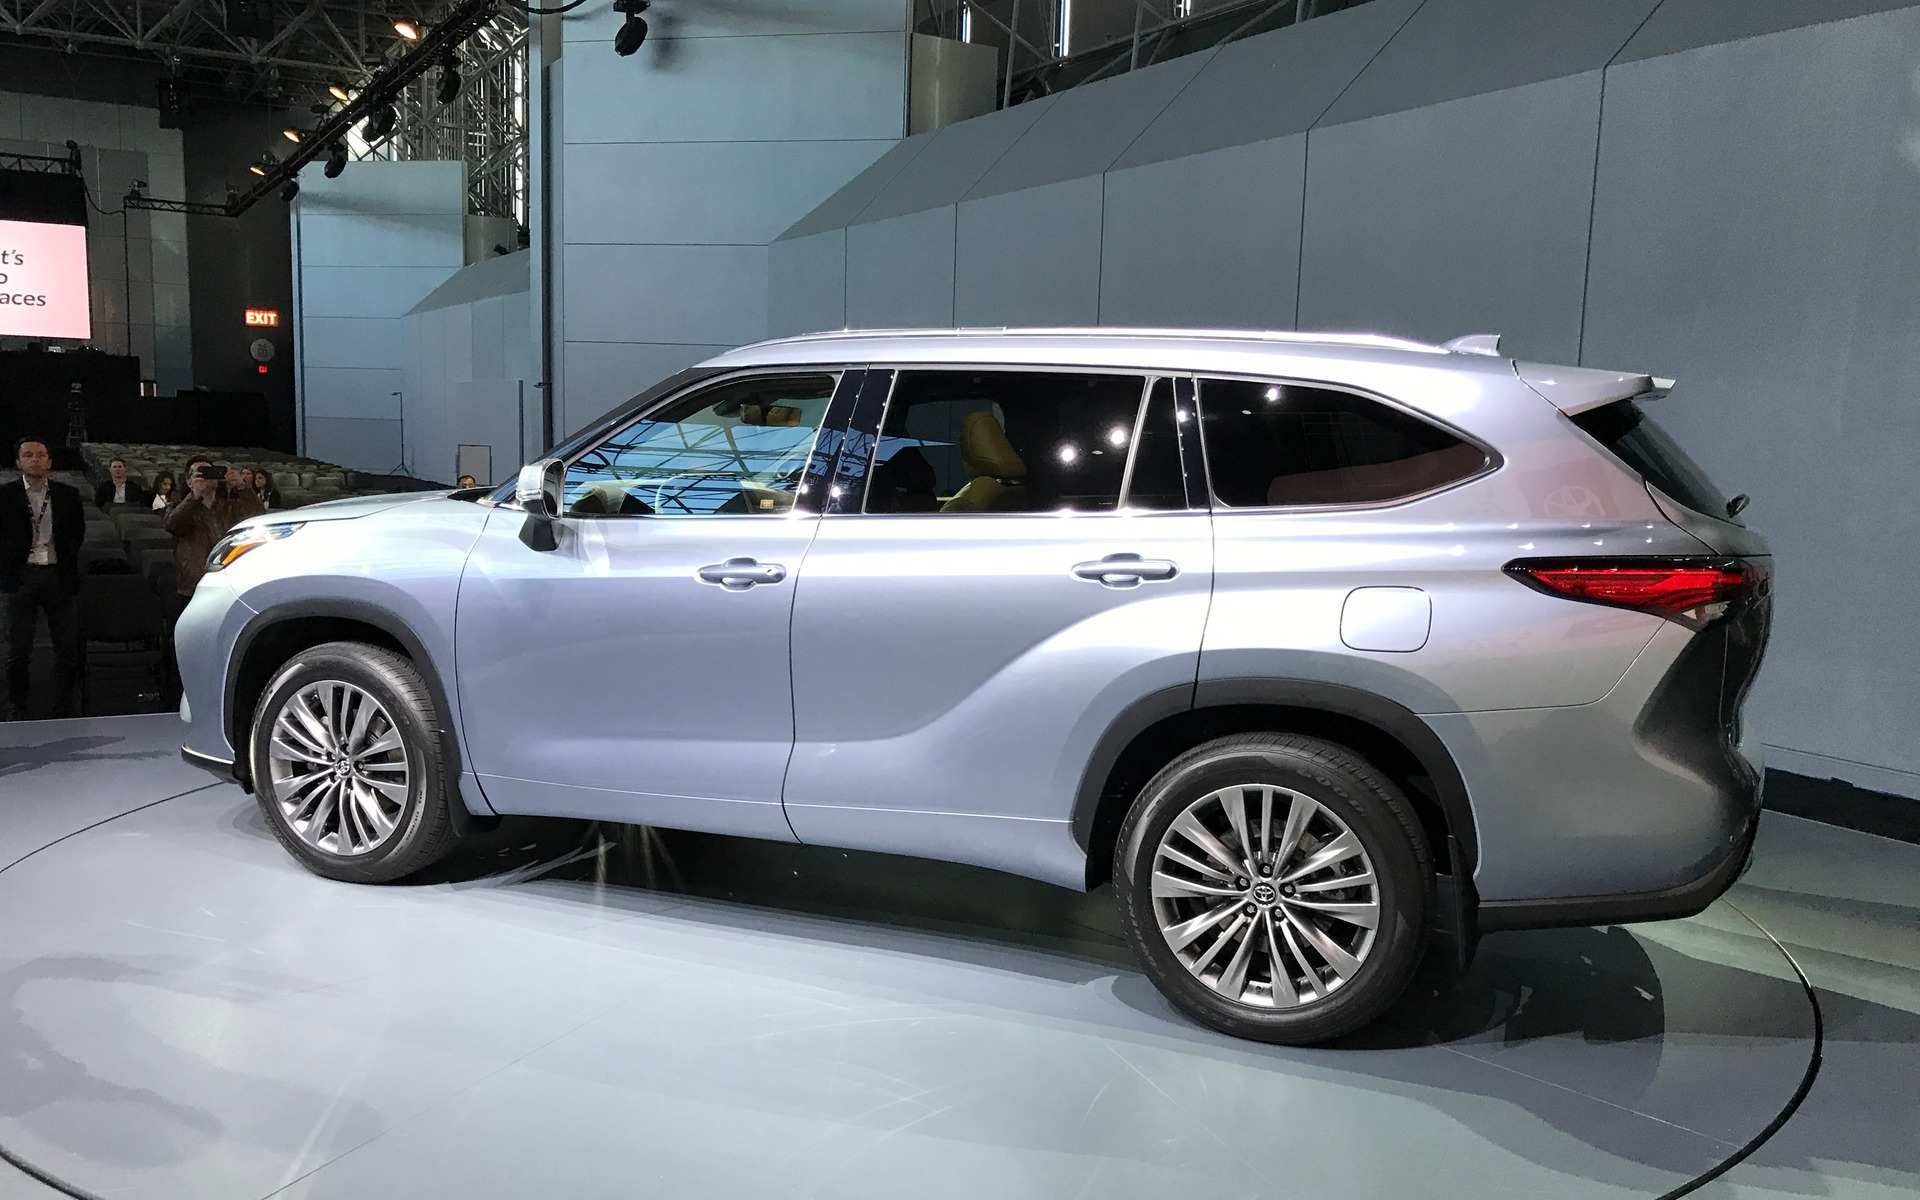 88 Great Toyota Kluger Hybrid 2020 Specs with Toyota Kluger Hybrid 2020